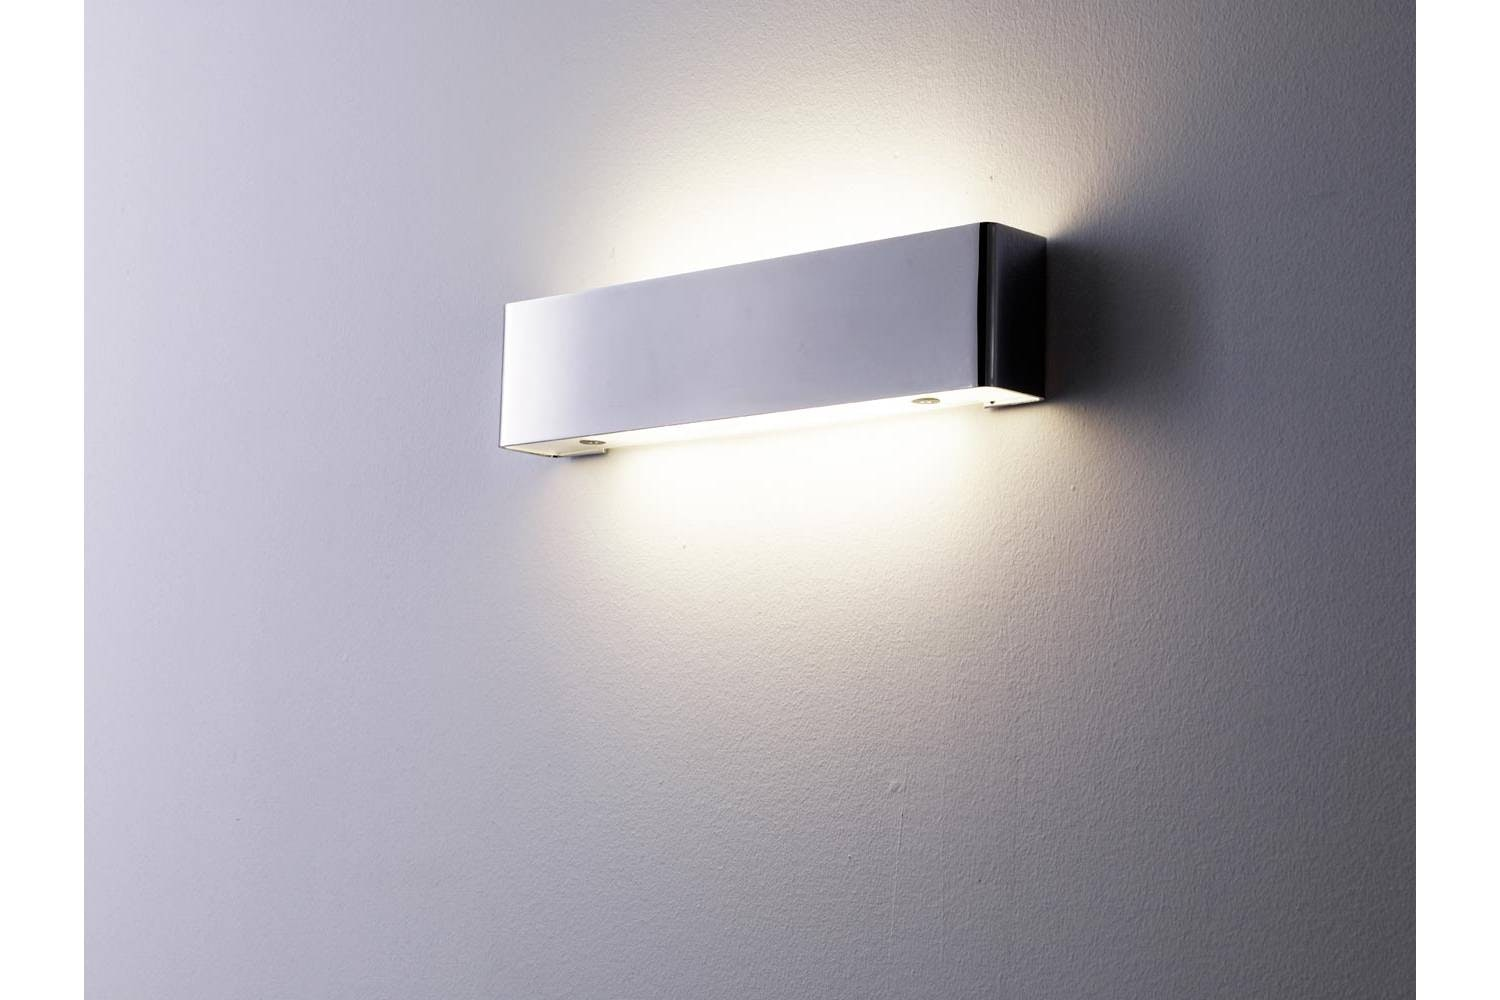 Leukon Wall Lamp by Antonio Citterio for Maxalto